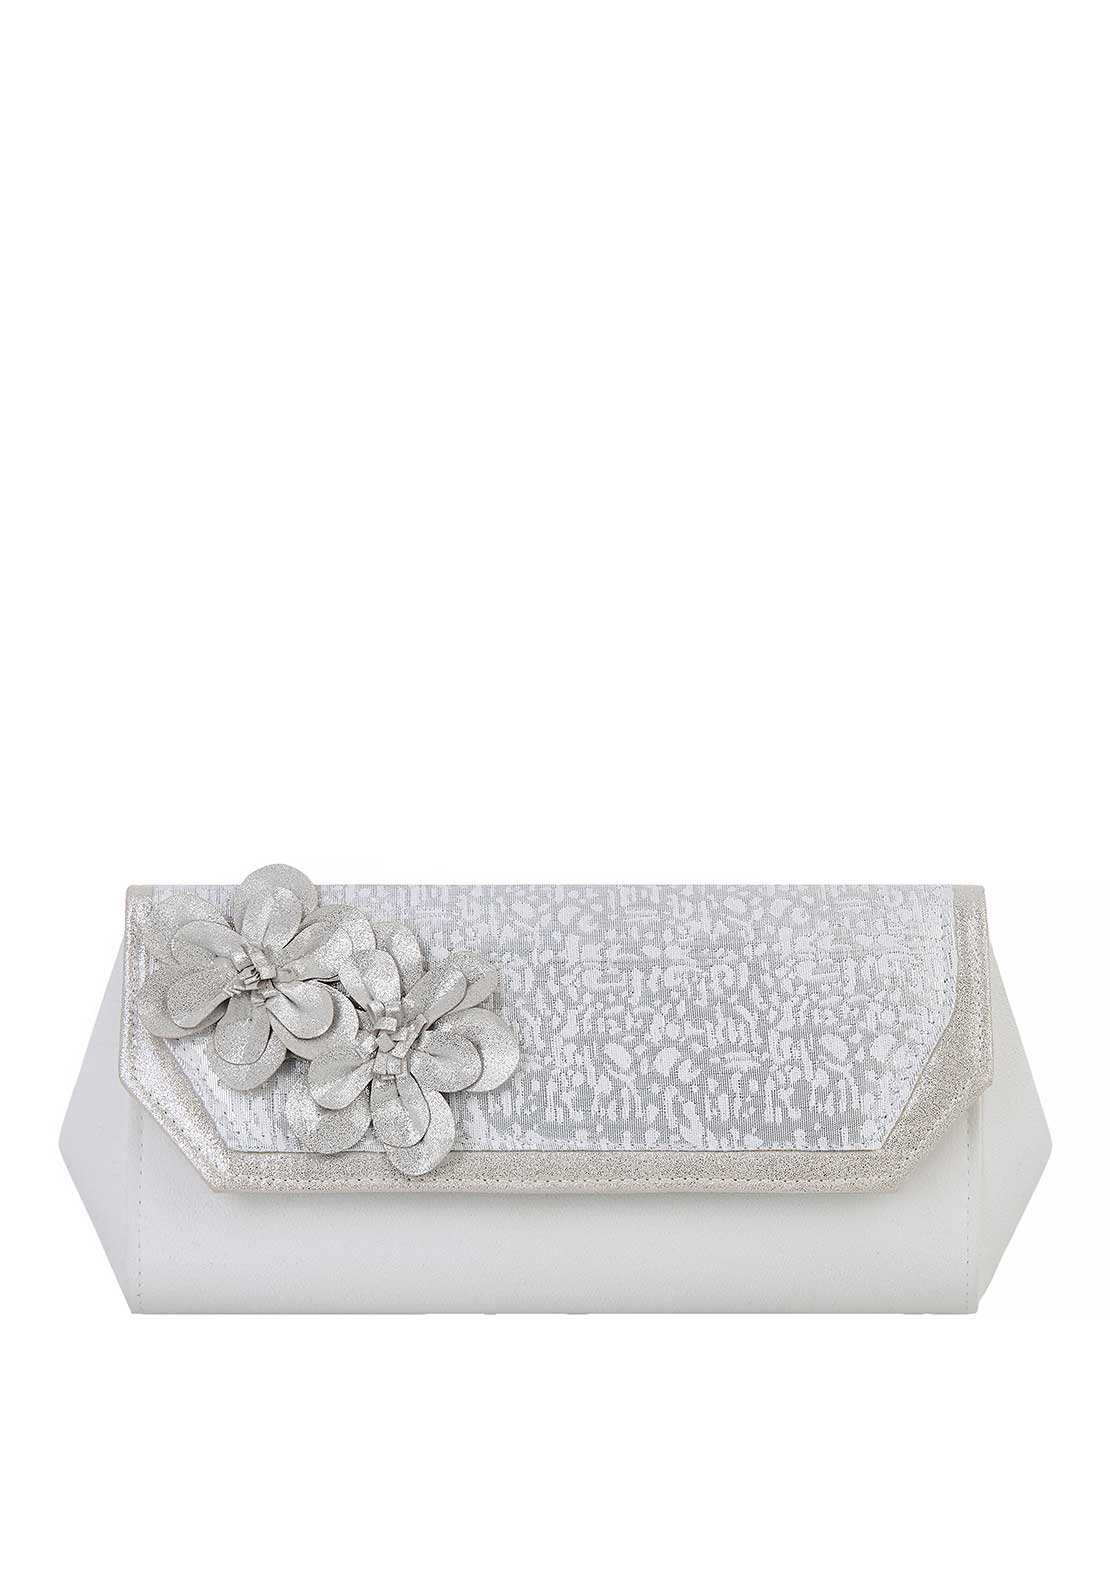 Ruby Shoo Stockholm Flower Shimmer Clutch Bag, Silver and Cream